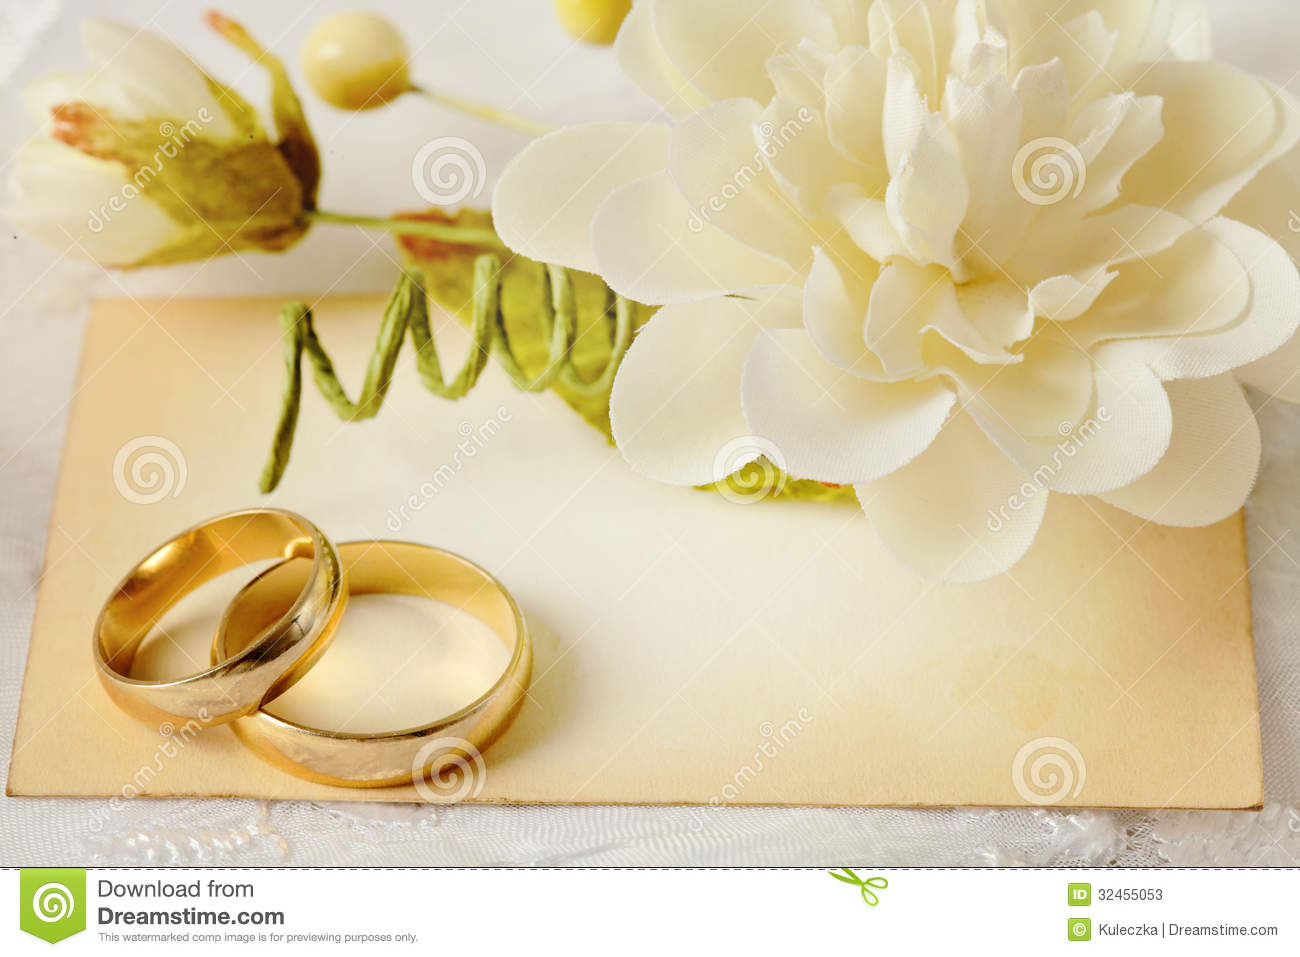 Wedding invitation stock image Image of wedding gold 32455053